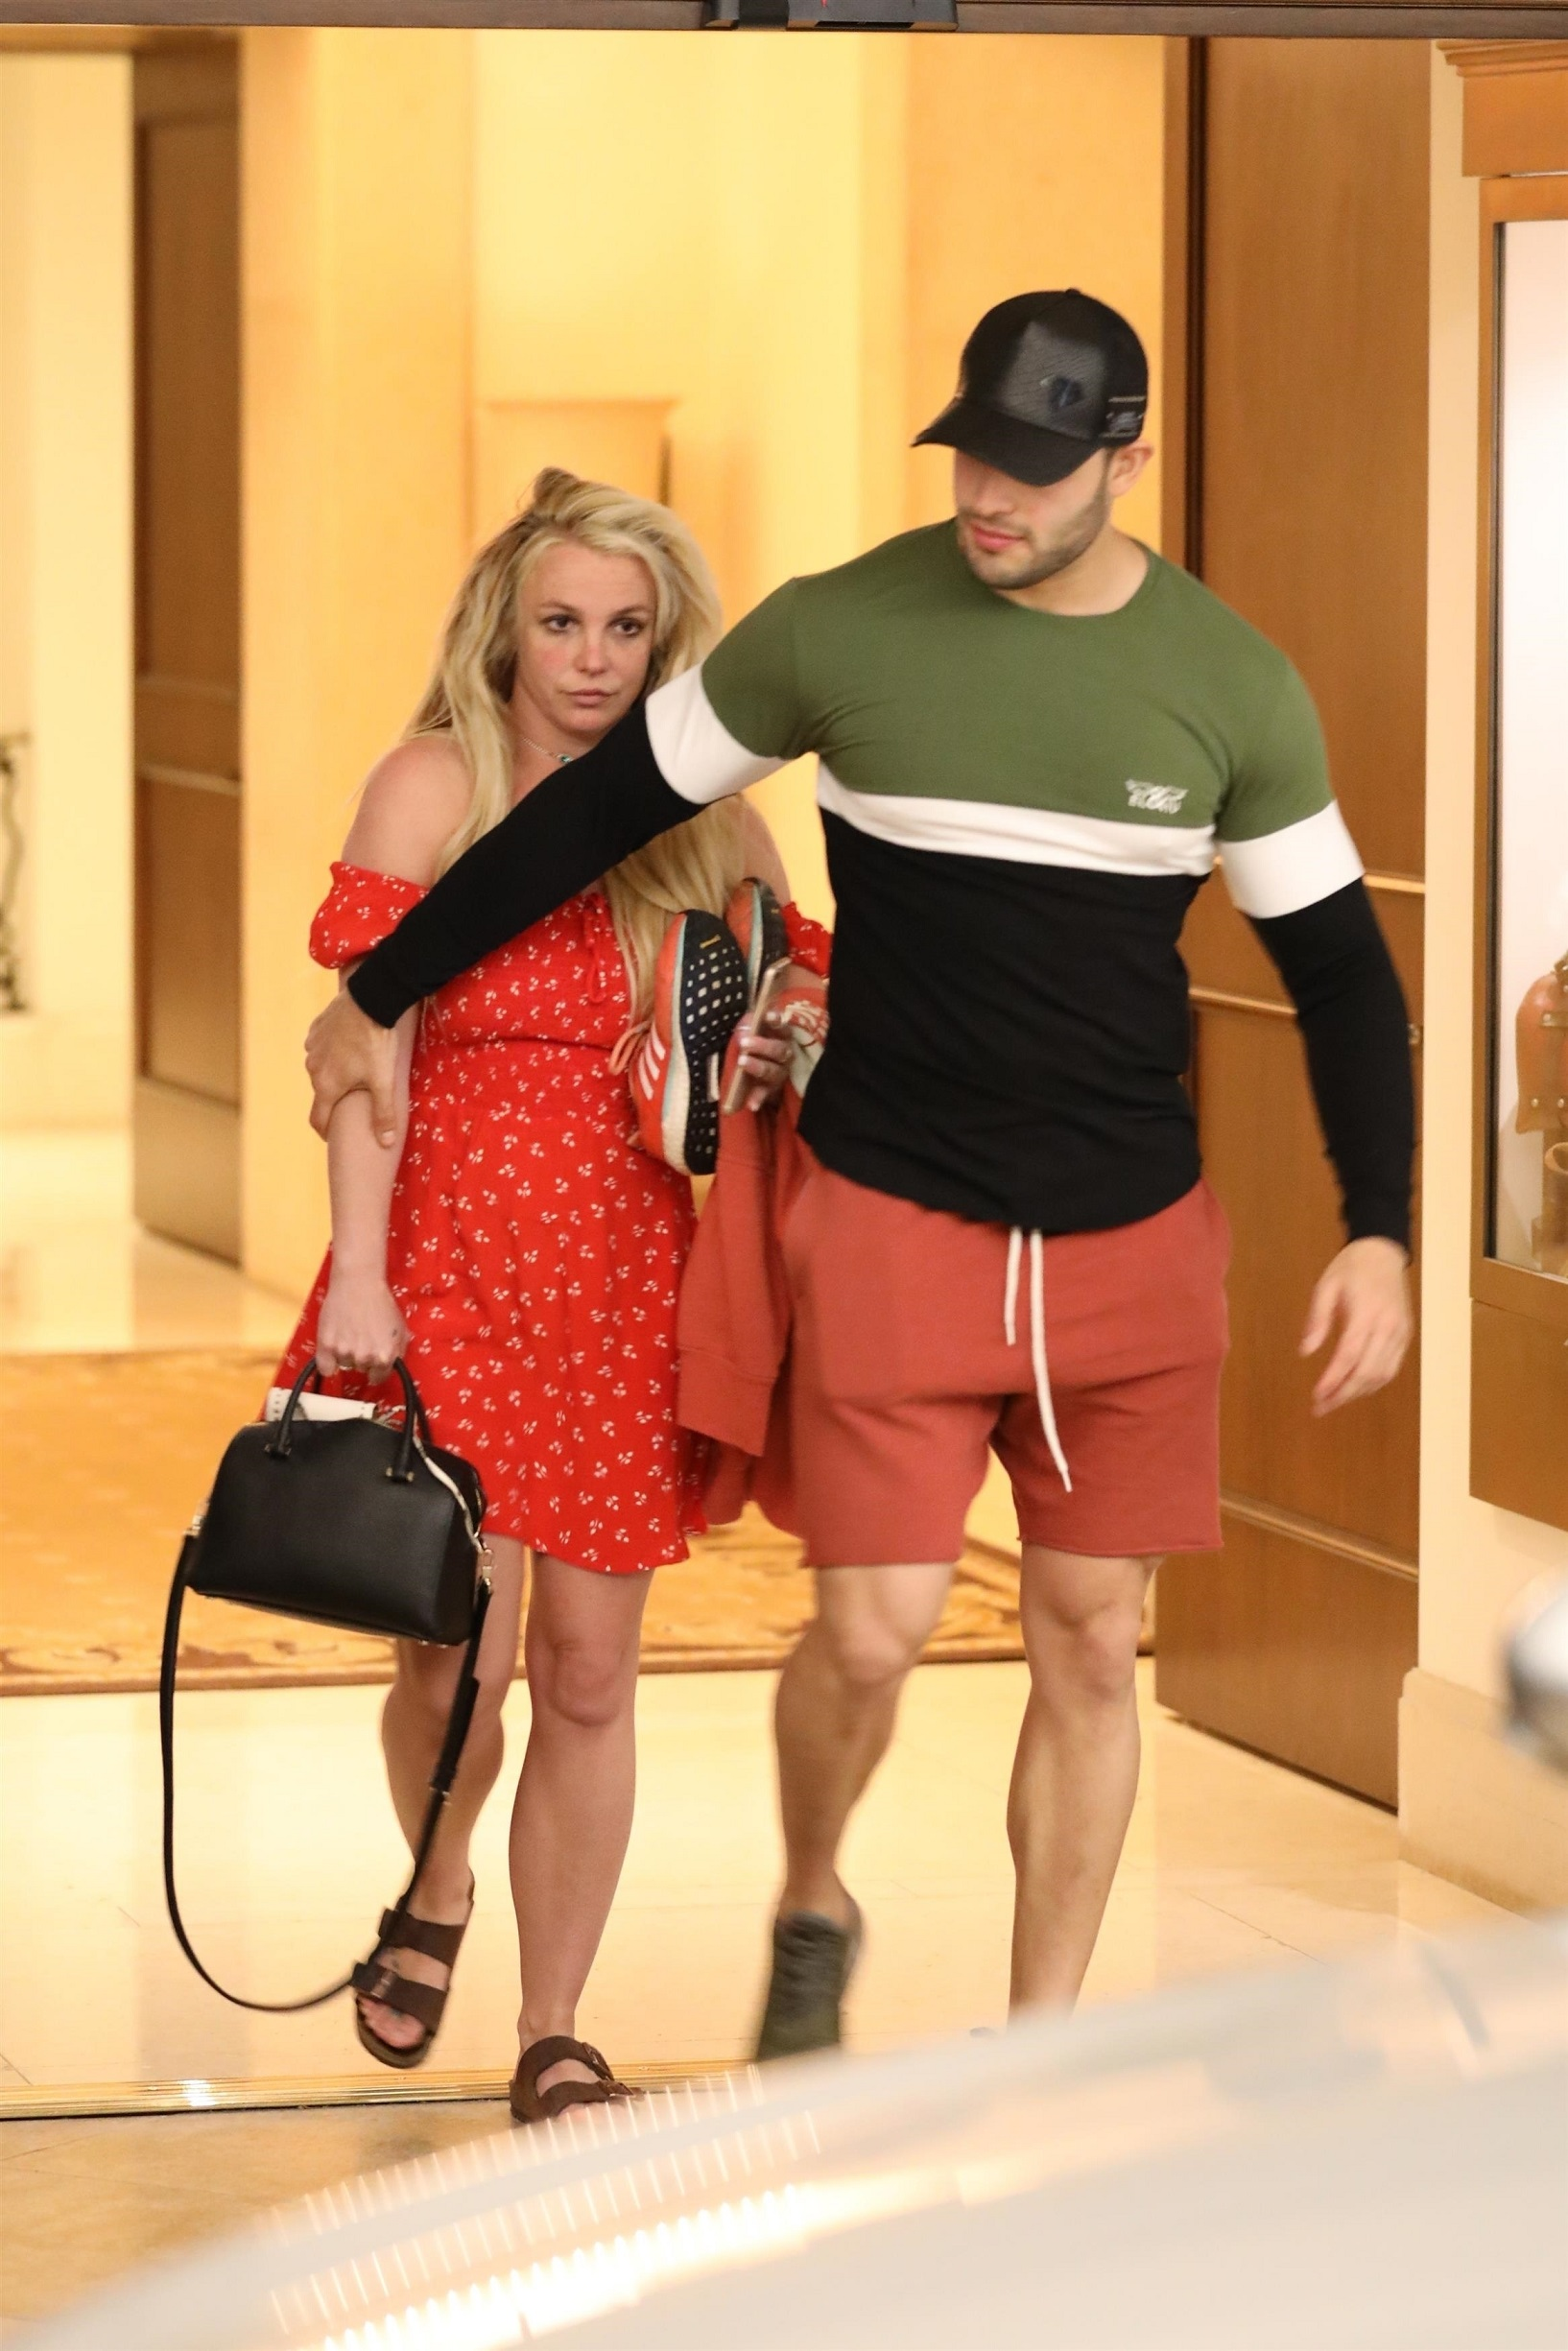 *PREMIUM-EXCLUSIVE* Britney Spears is seen leaving The Montage hotel in Beverly Hills after a day of indulgences Britney Spears and Sam Asghari